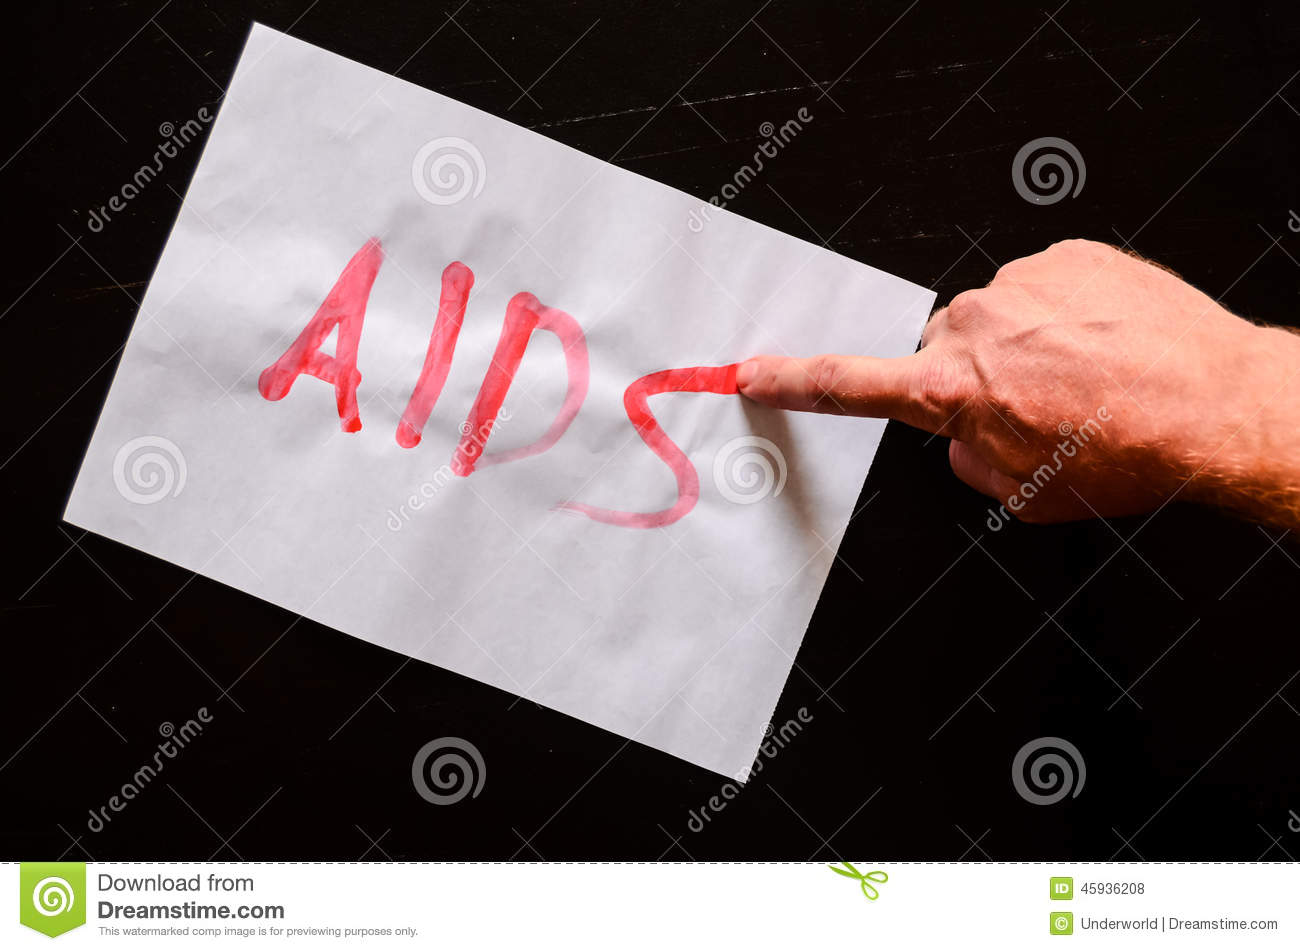 aids epidemic in africa essays The aids cult: essays on the gay health crisis  aspects of the aids epidemic  of essays takes as a medical given that hiv=aids is wrong and.